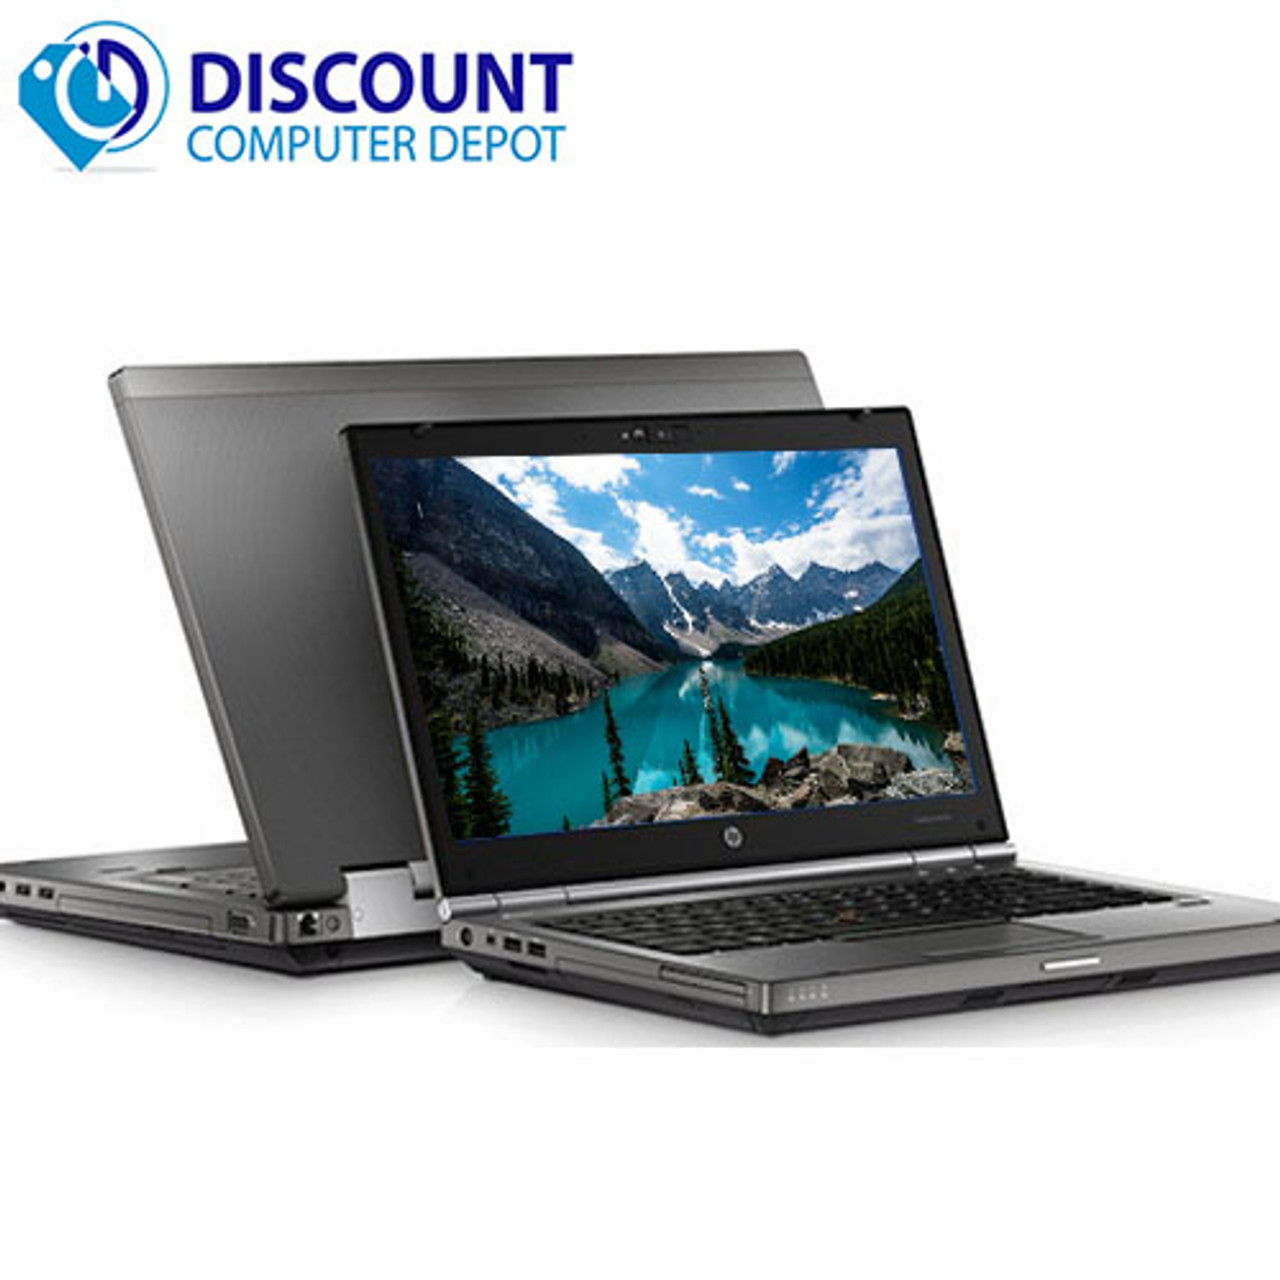 HP Elite 8460w Laptop | Core i7 Processor | 4GB RAM | 320GB HDD | Windows  10 | DVD-RW and WIFI